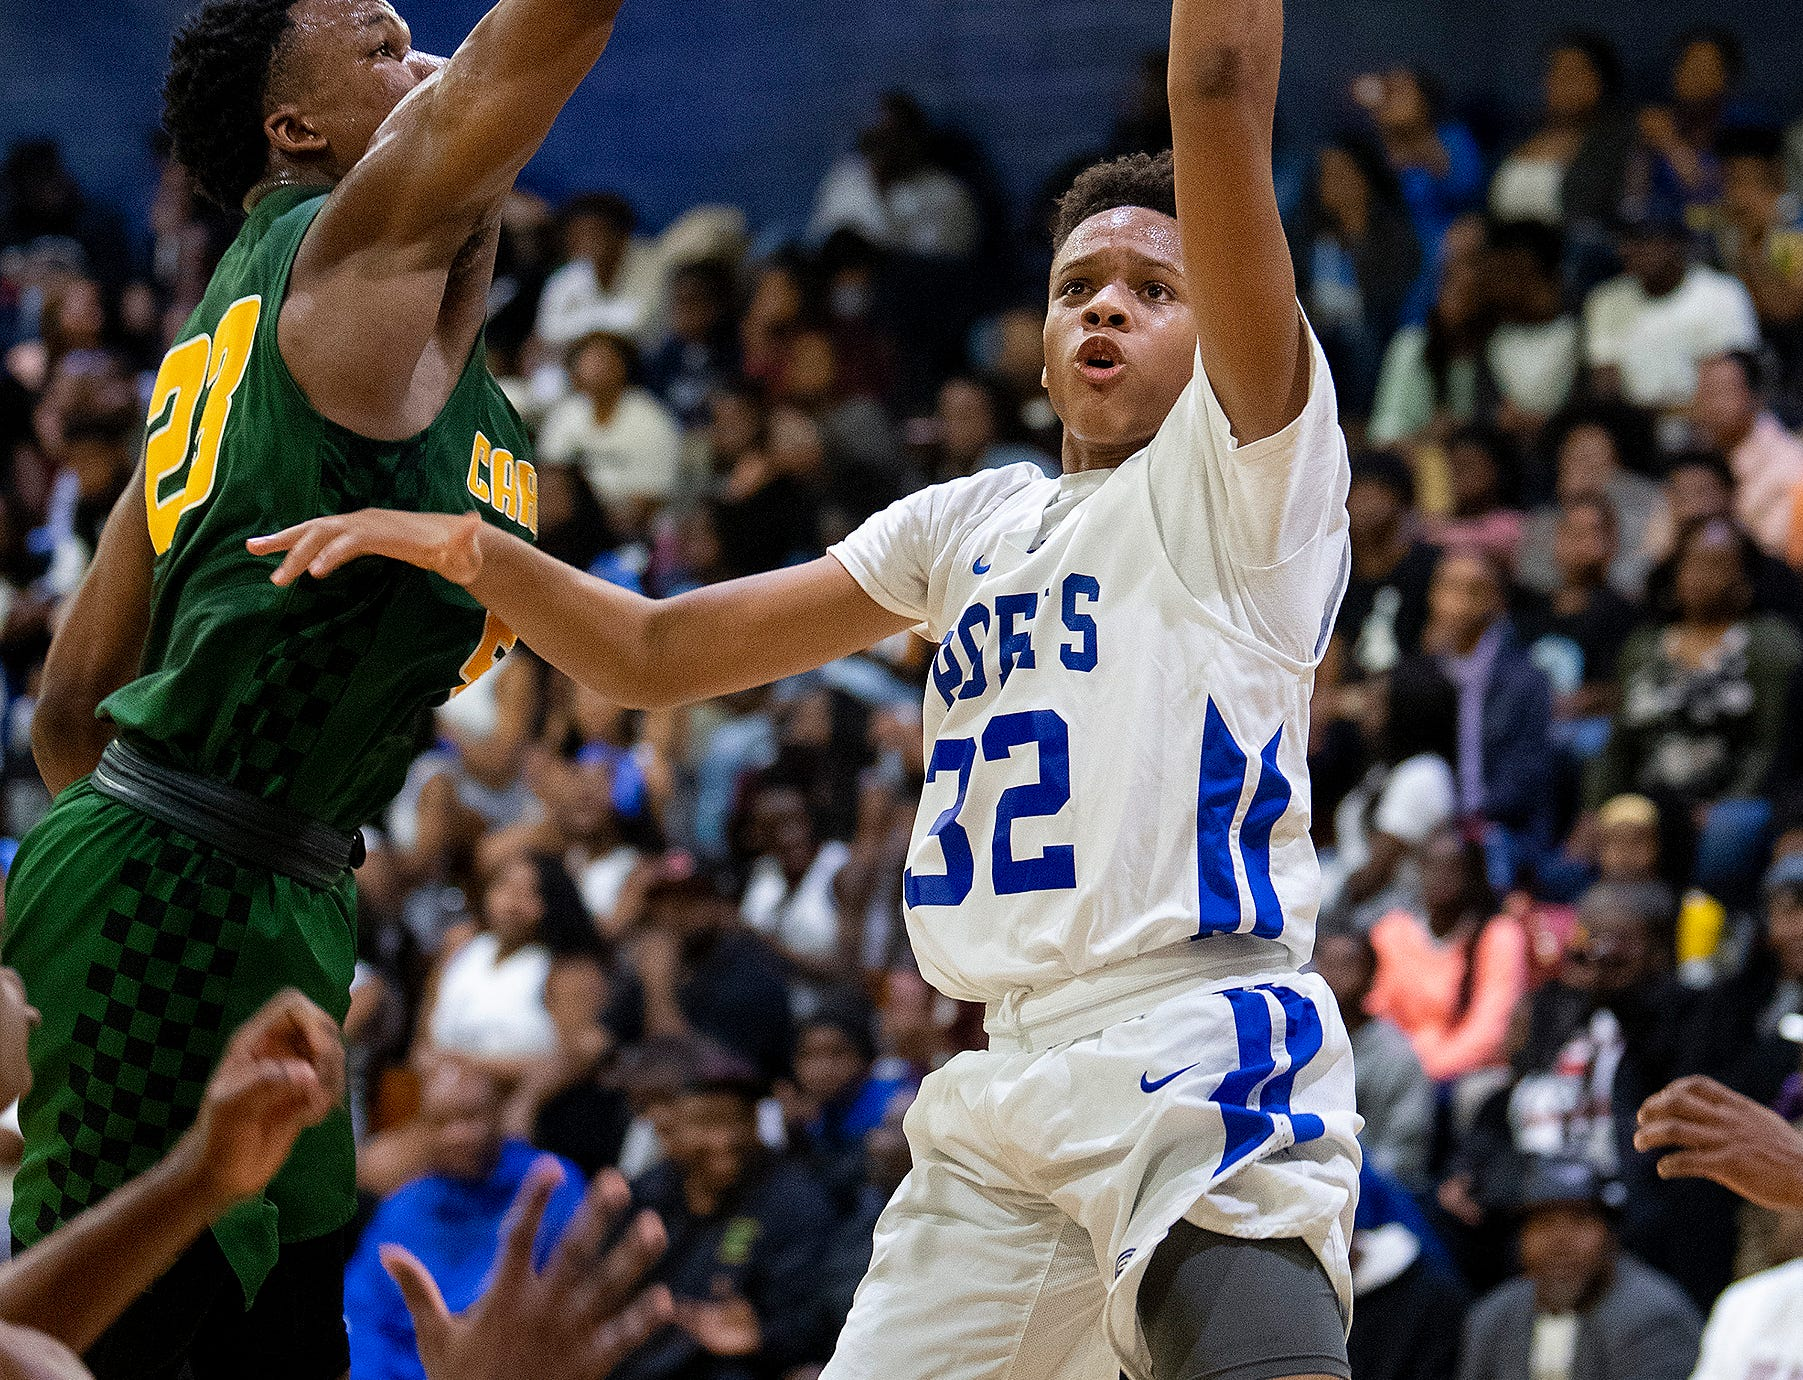 Lanier's Joshua Williams (32) against Carver at the Lanier campus in Montgomery, Ala., on Friday January 11, 2019.